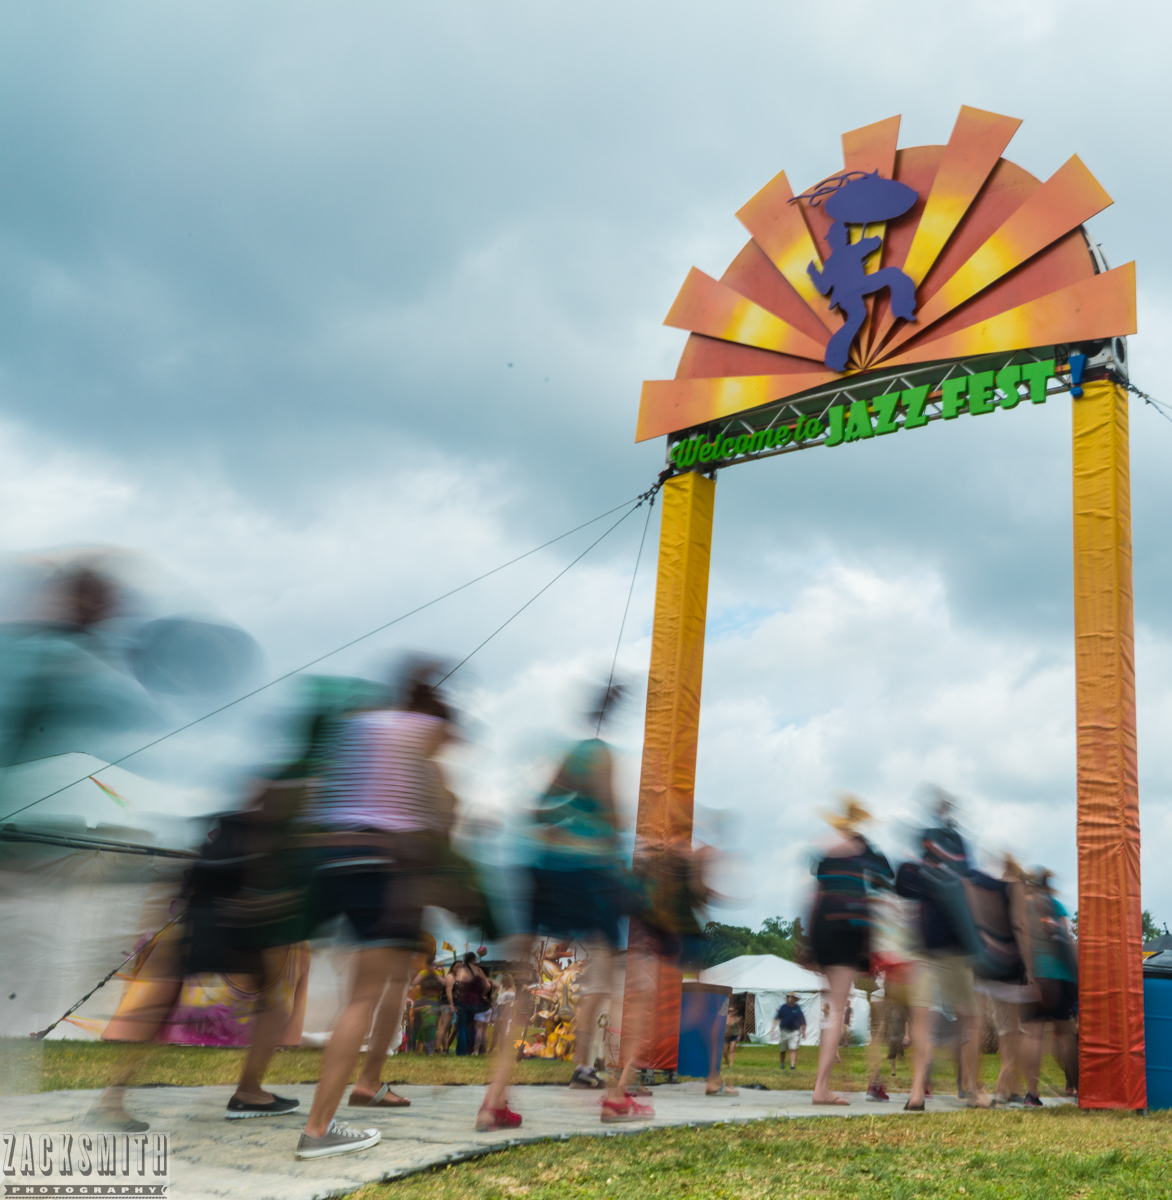 Participants rush into the Gentilly entrance of Jazz Fest on Saturday, April 29th. I achieved this effect by using a 4 stop neutral density filter which allowed me to choose a longer shutter speed but not overexpose the images. I used a tripod as well.